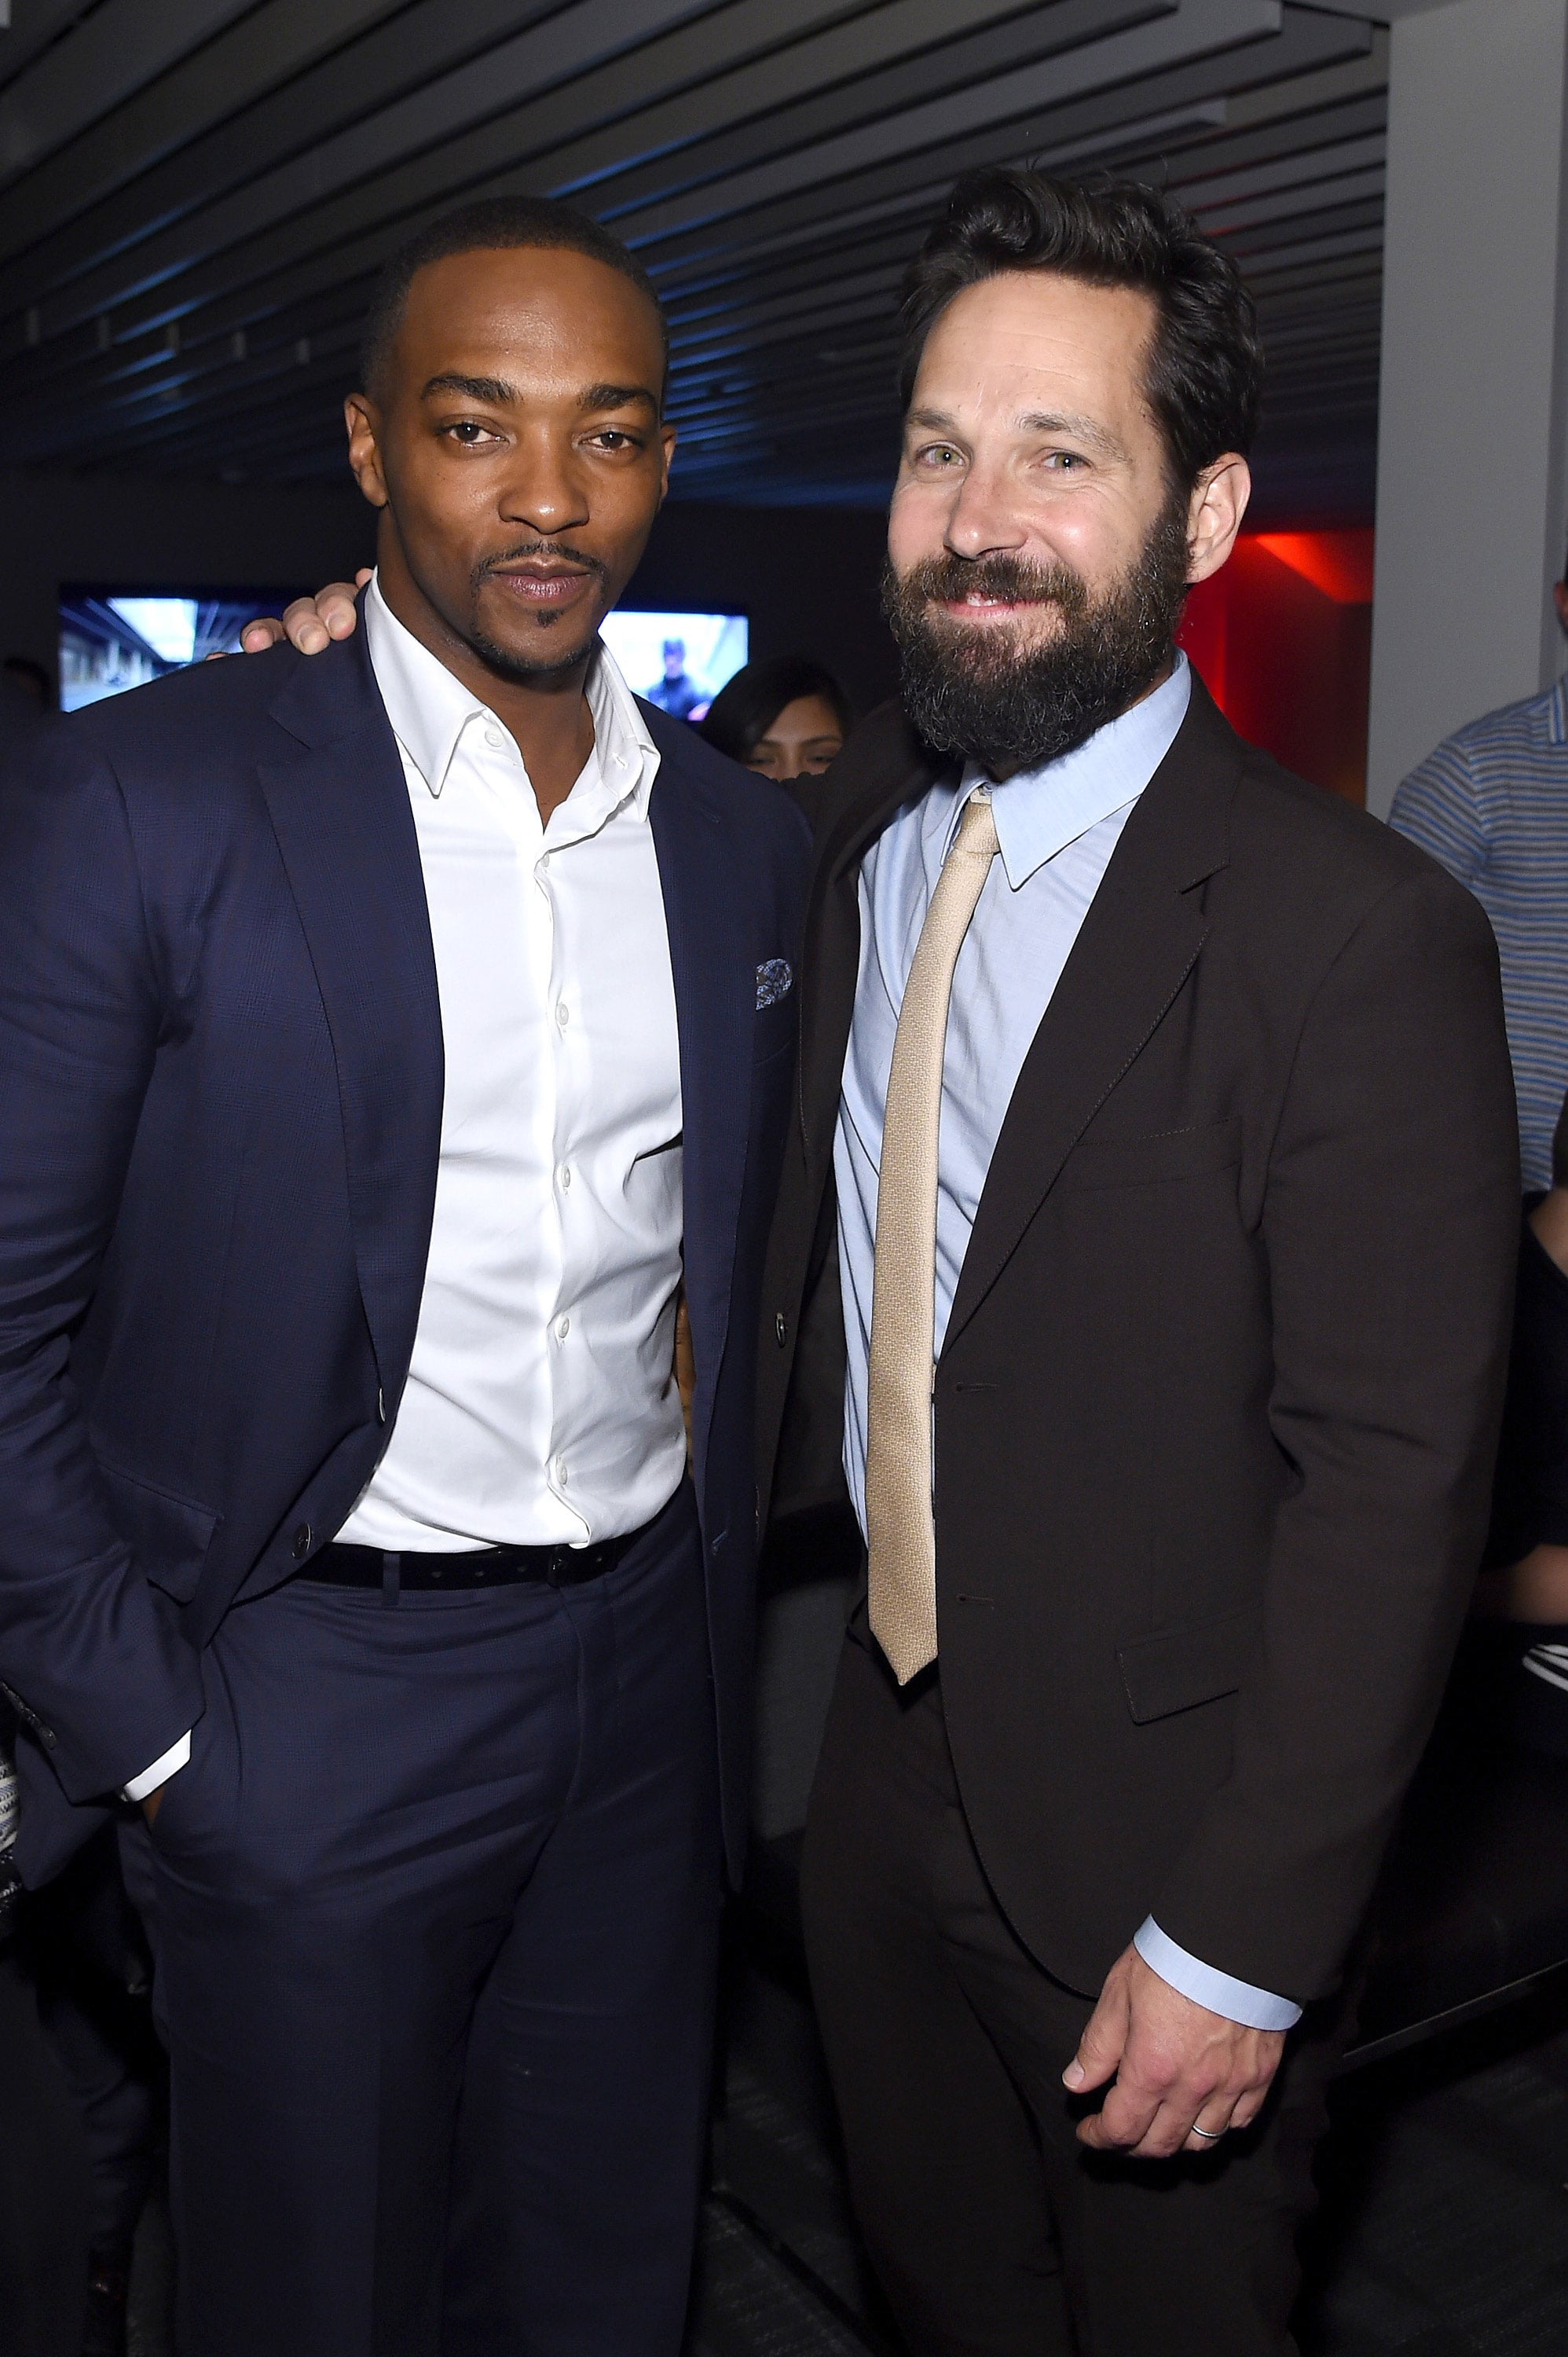 NEW YORK, NY - MAY 04:  Anthony Mackie and Paul Rudd attend the after party for the screening of Marvel's